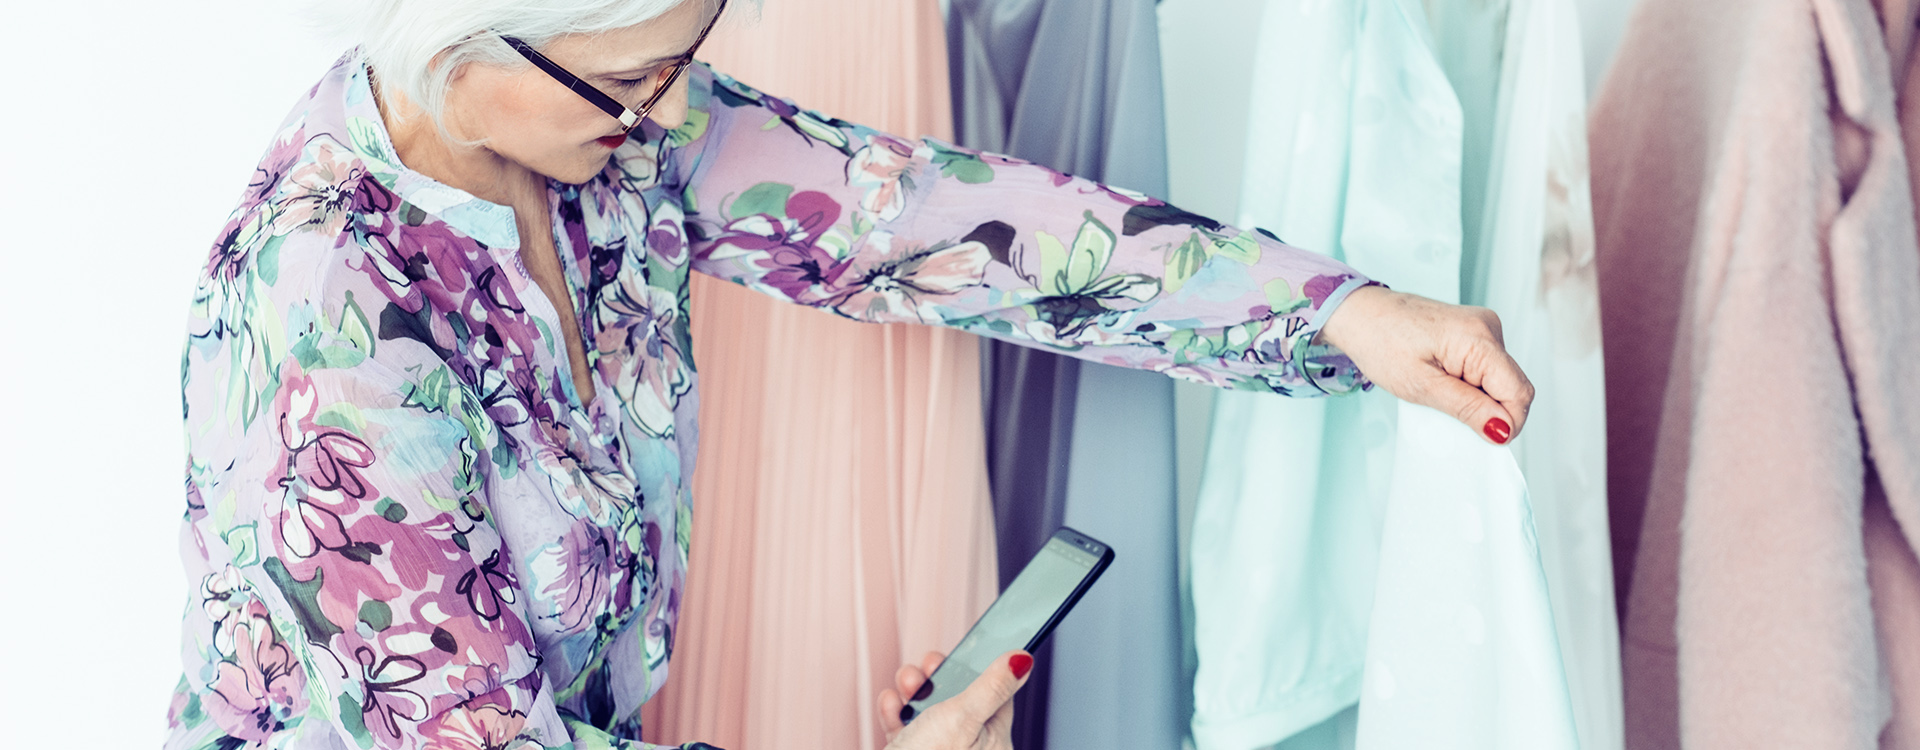 Auto-tagging: an essential ally for fashion retail to improve conversion rates